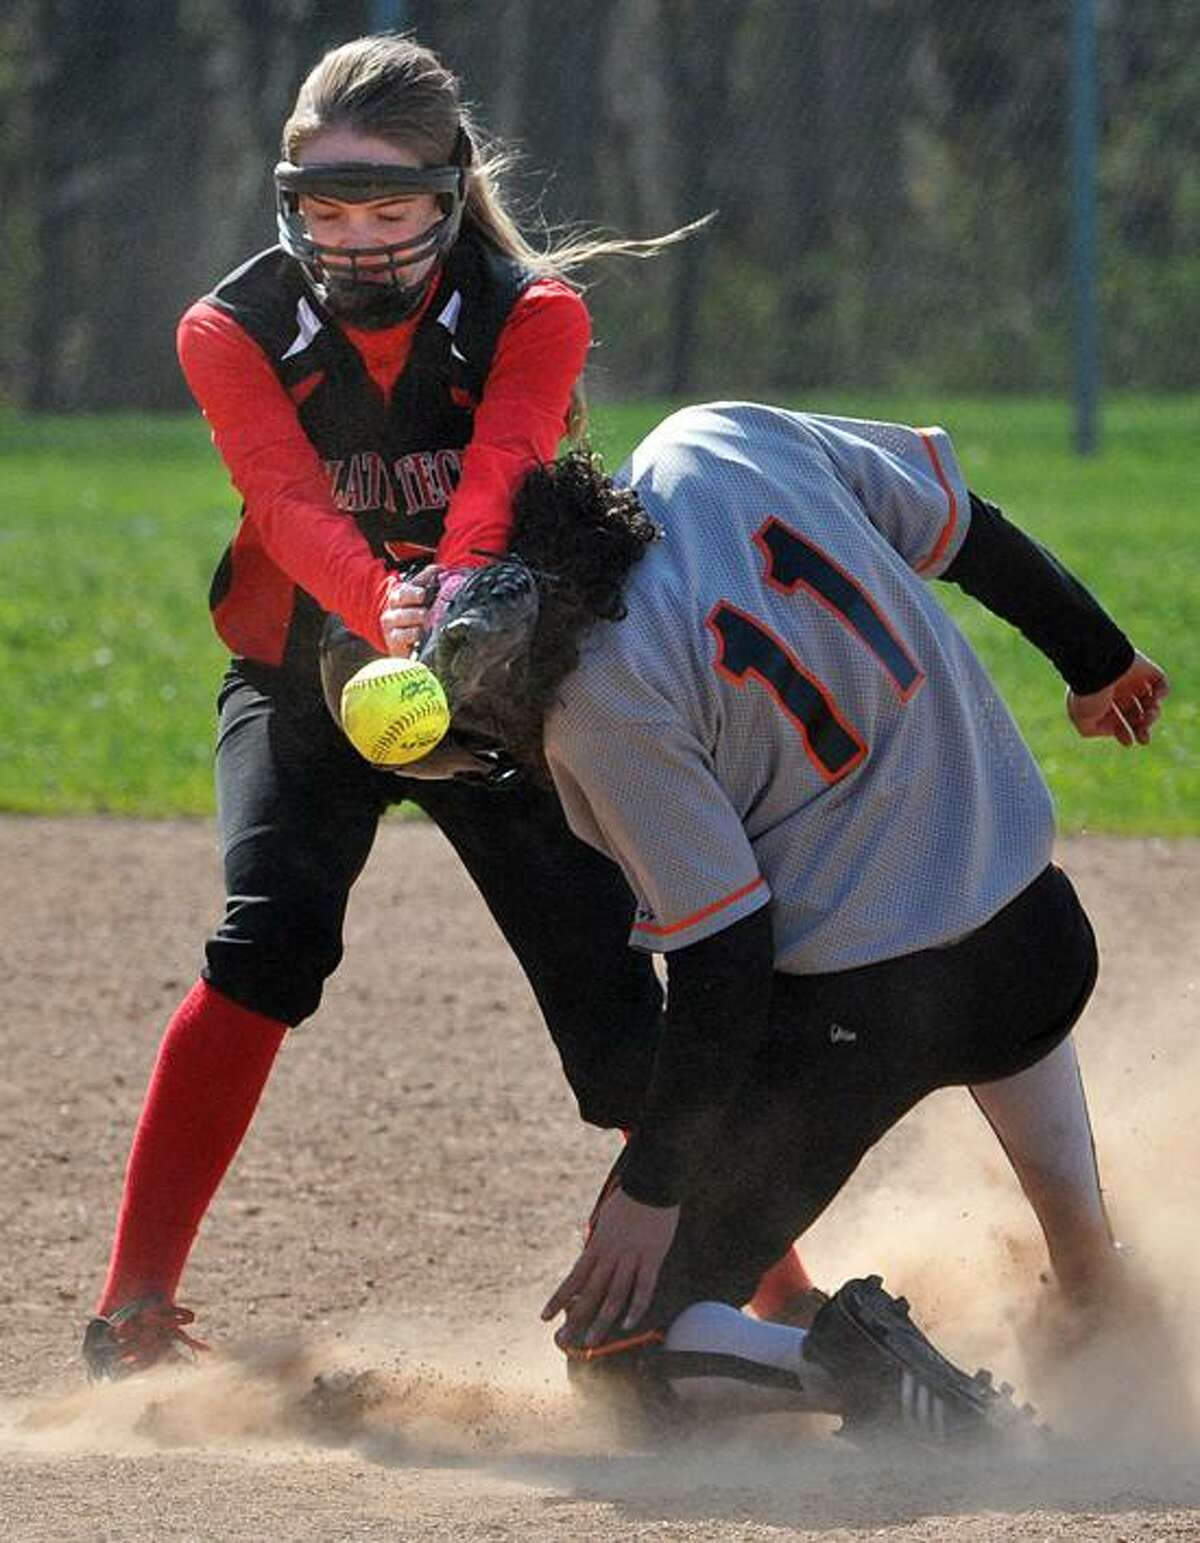 Milford-- Platt Tech's Amber Lewandowski tries to get the tag on Goodwin Tech's Jocelyn Burgos during a 4th inning stolen base. She was safe on the play. Photo-Peter Casolino/Register pcasolino@newhavenregister.com